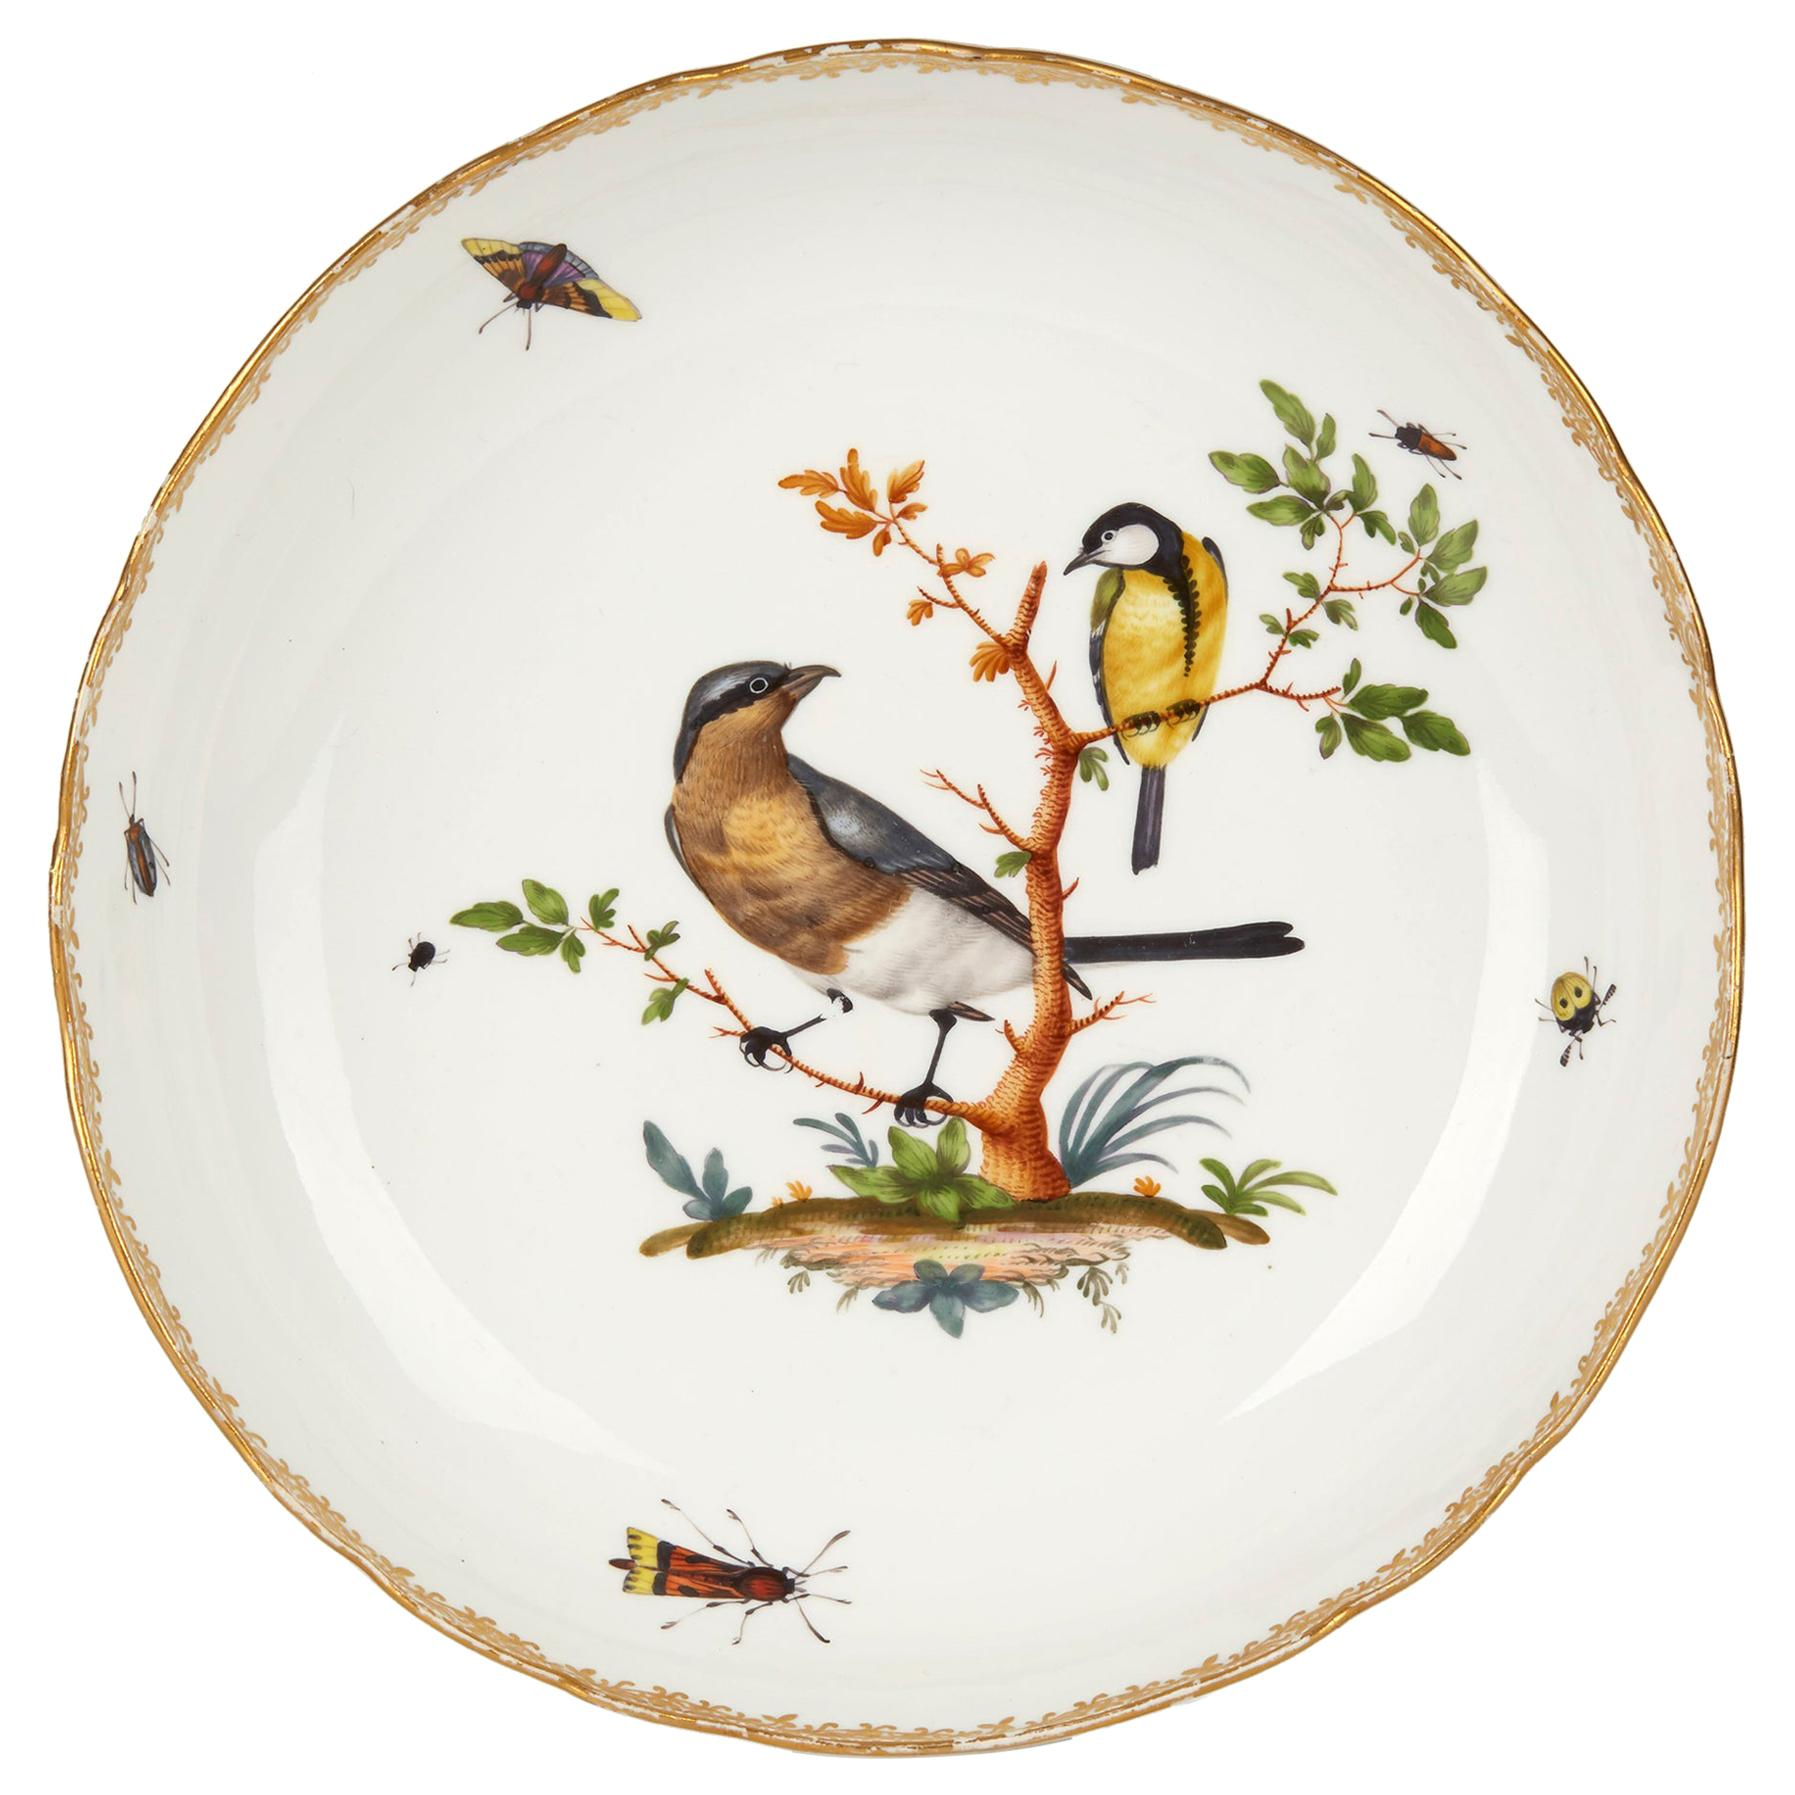 Meissen Porcelain Bowl Painted with Birds and Insects, 19th Century